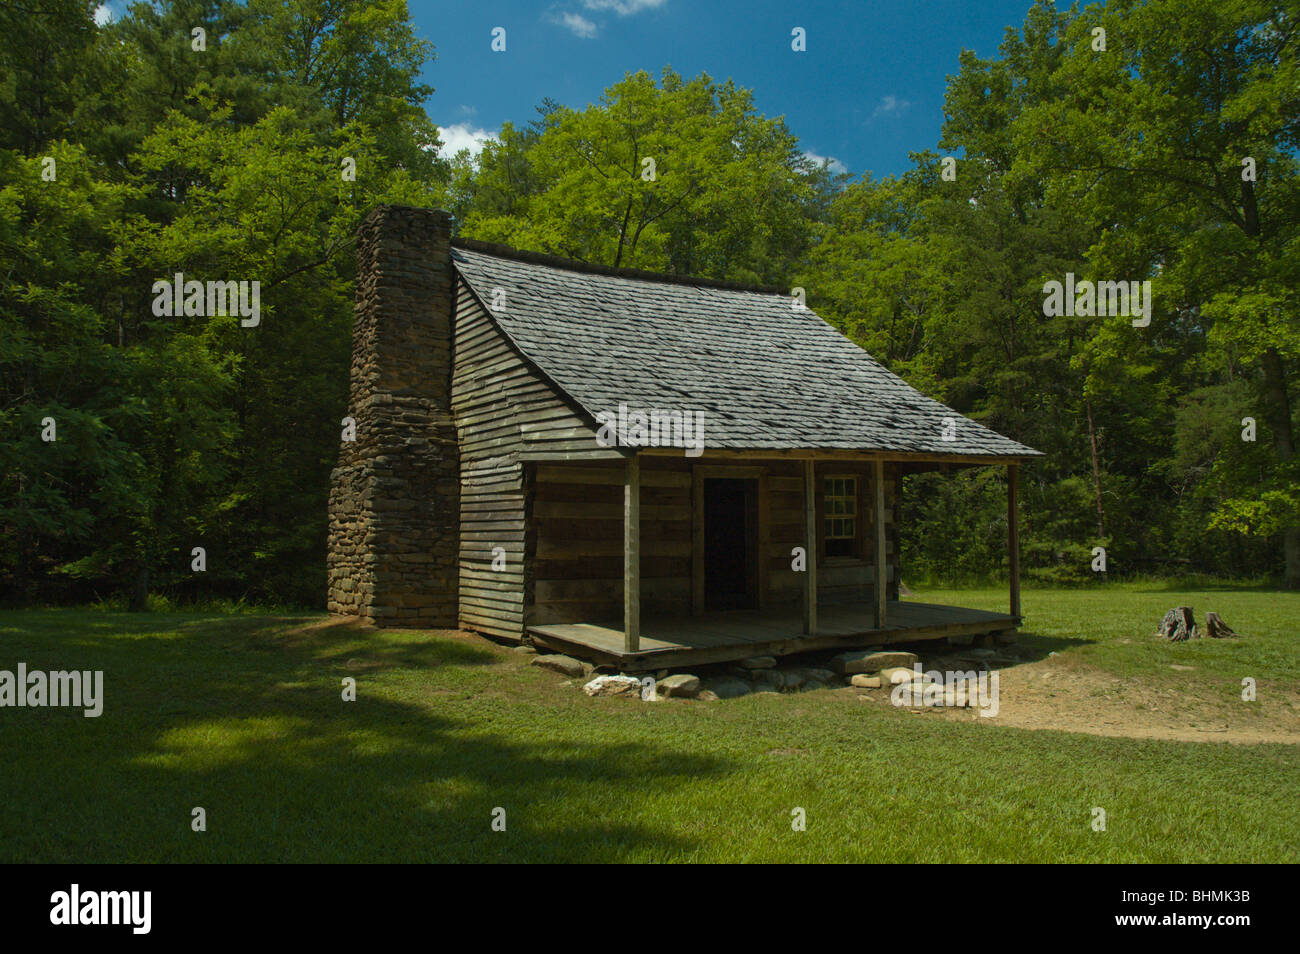 Charmant Historic Cabin In Cades Cove, Great Smoky Mountains National Park, Tennessee